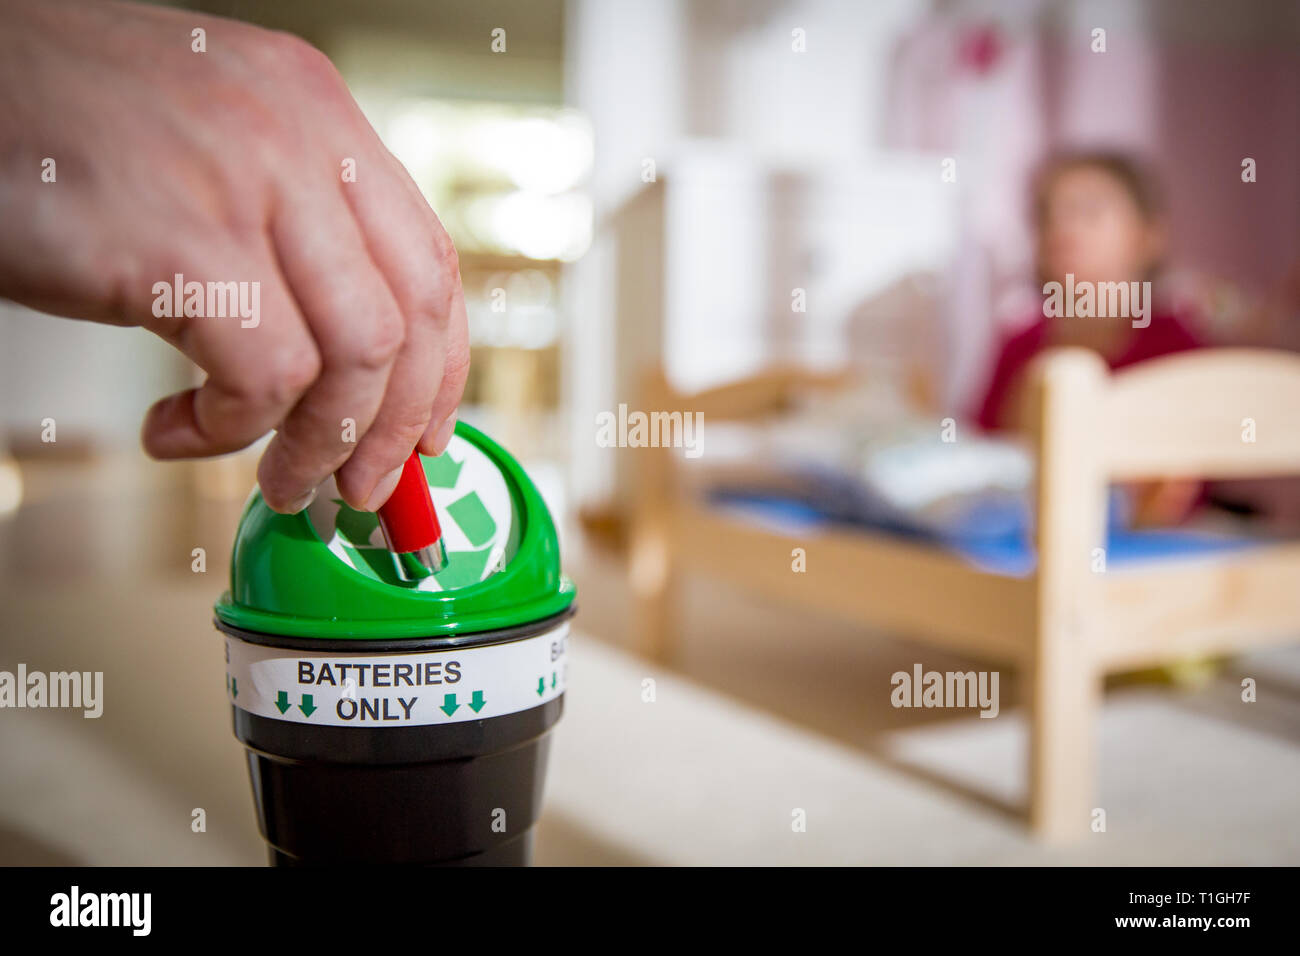 Man putting used batteries into recycling box at home. Child in the nursery room playing with toys. Separating waste concept. Batteries Only. - Stock Image